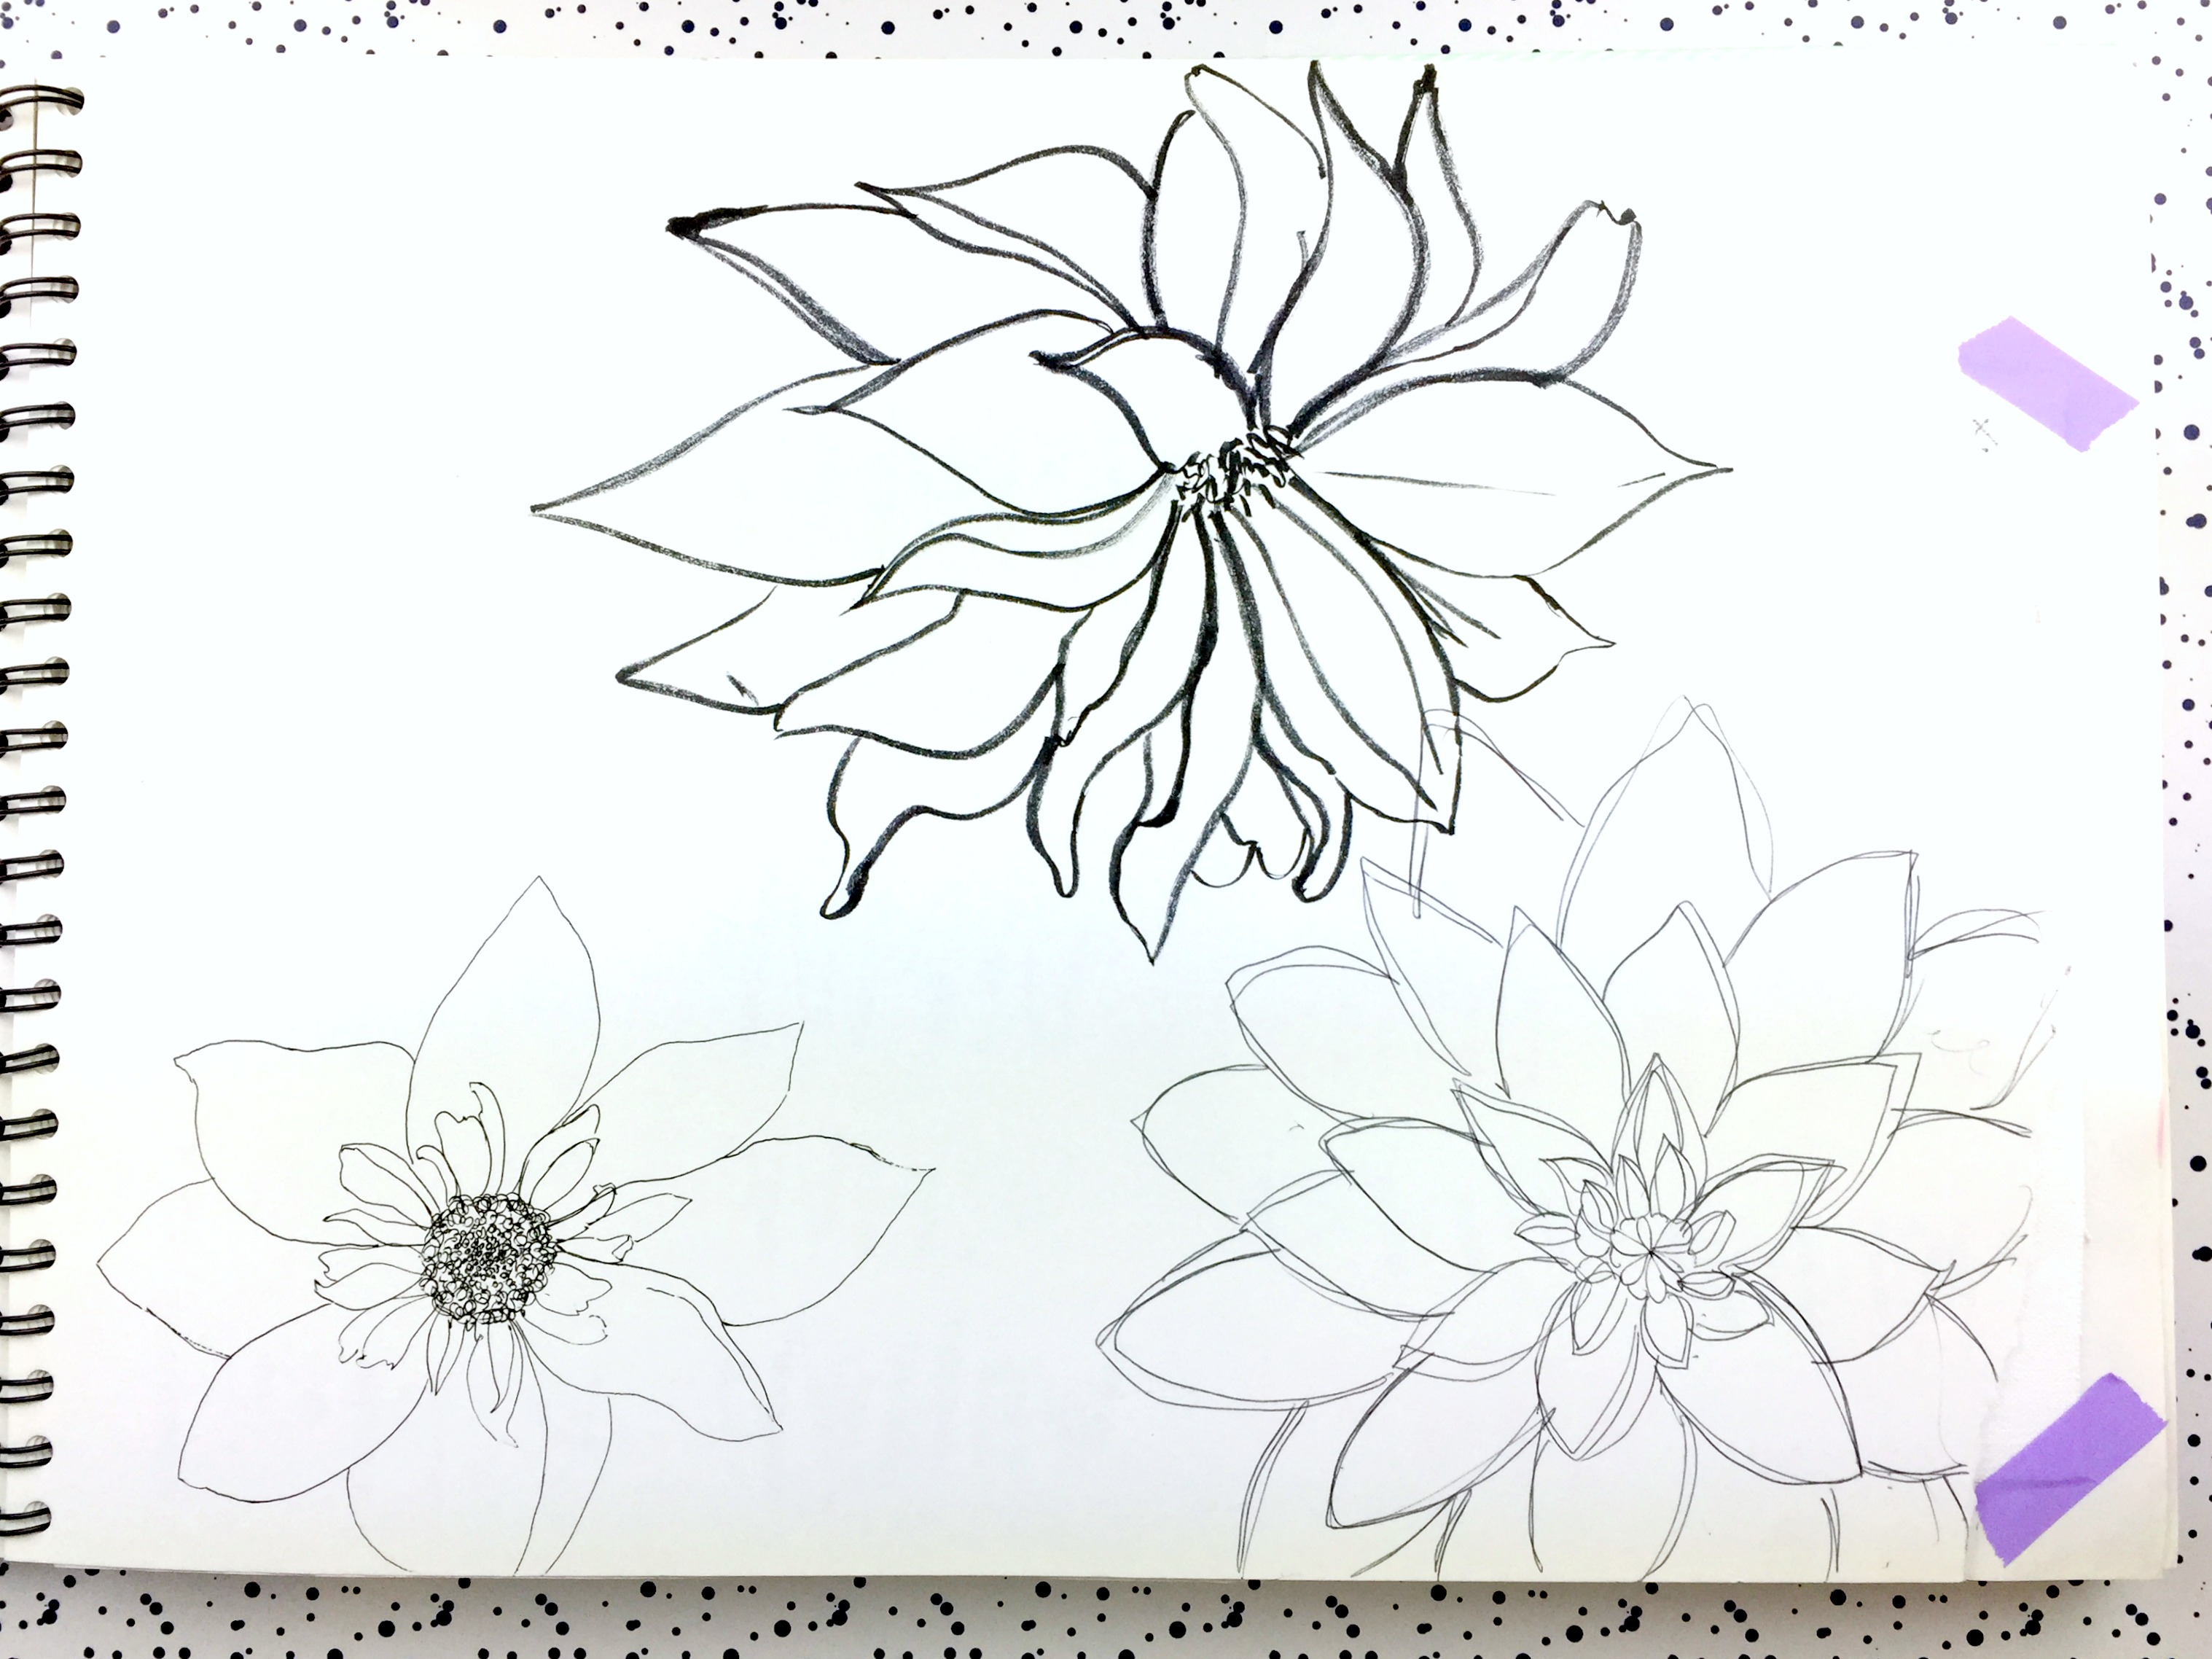 dahlia-ink-drawing-daphnerosa-3